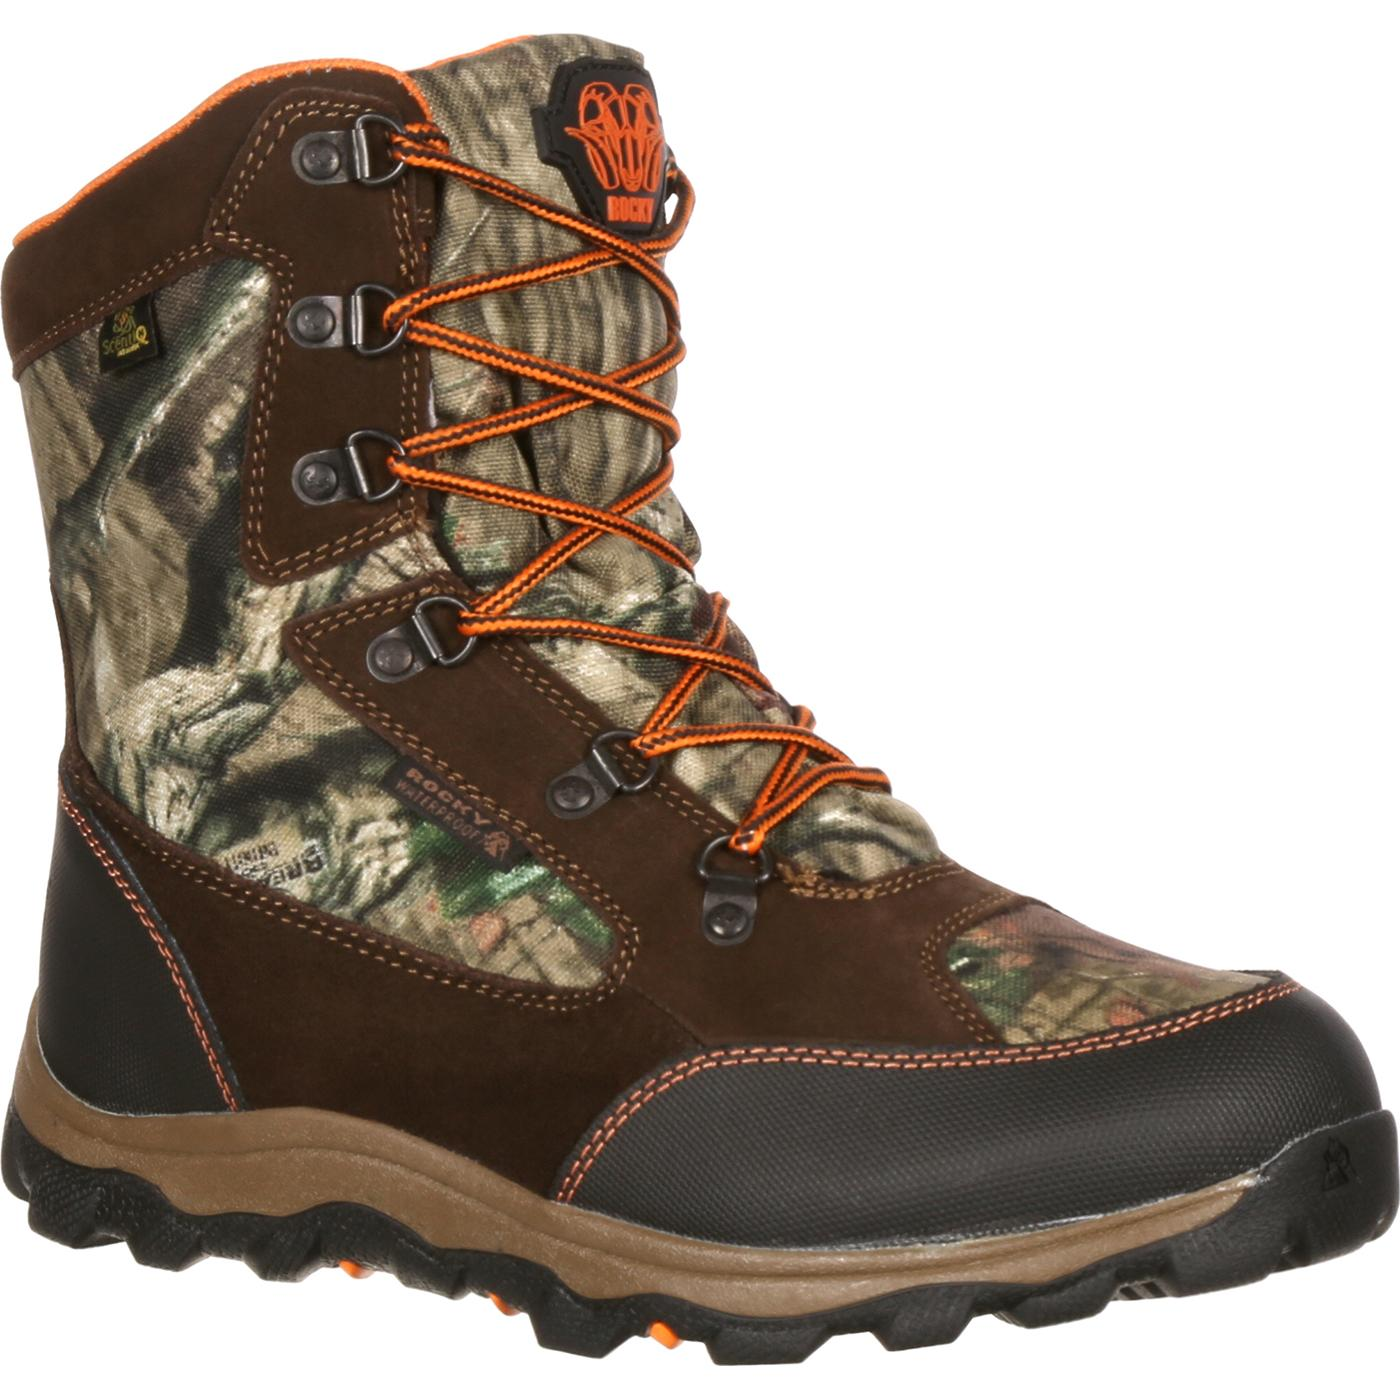 0051e7433 Rocky Kids  R.A.M. Waterproof Insulated Camo Boot